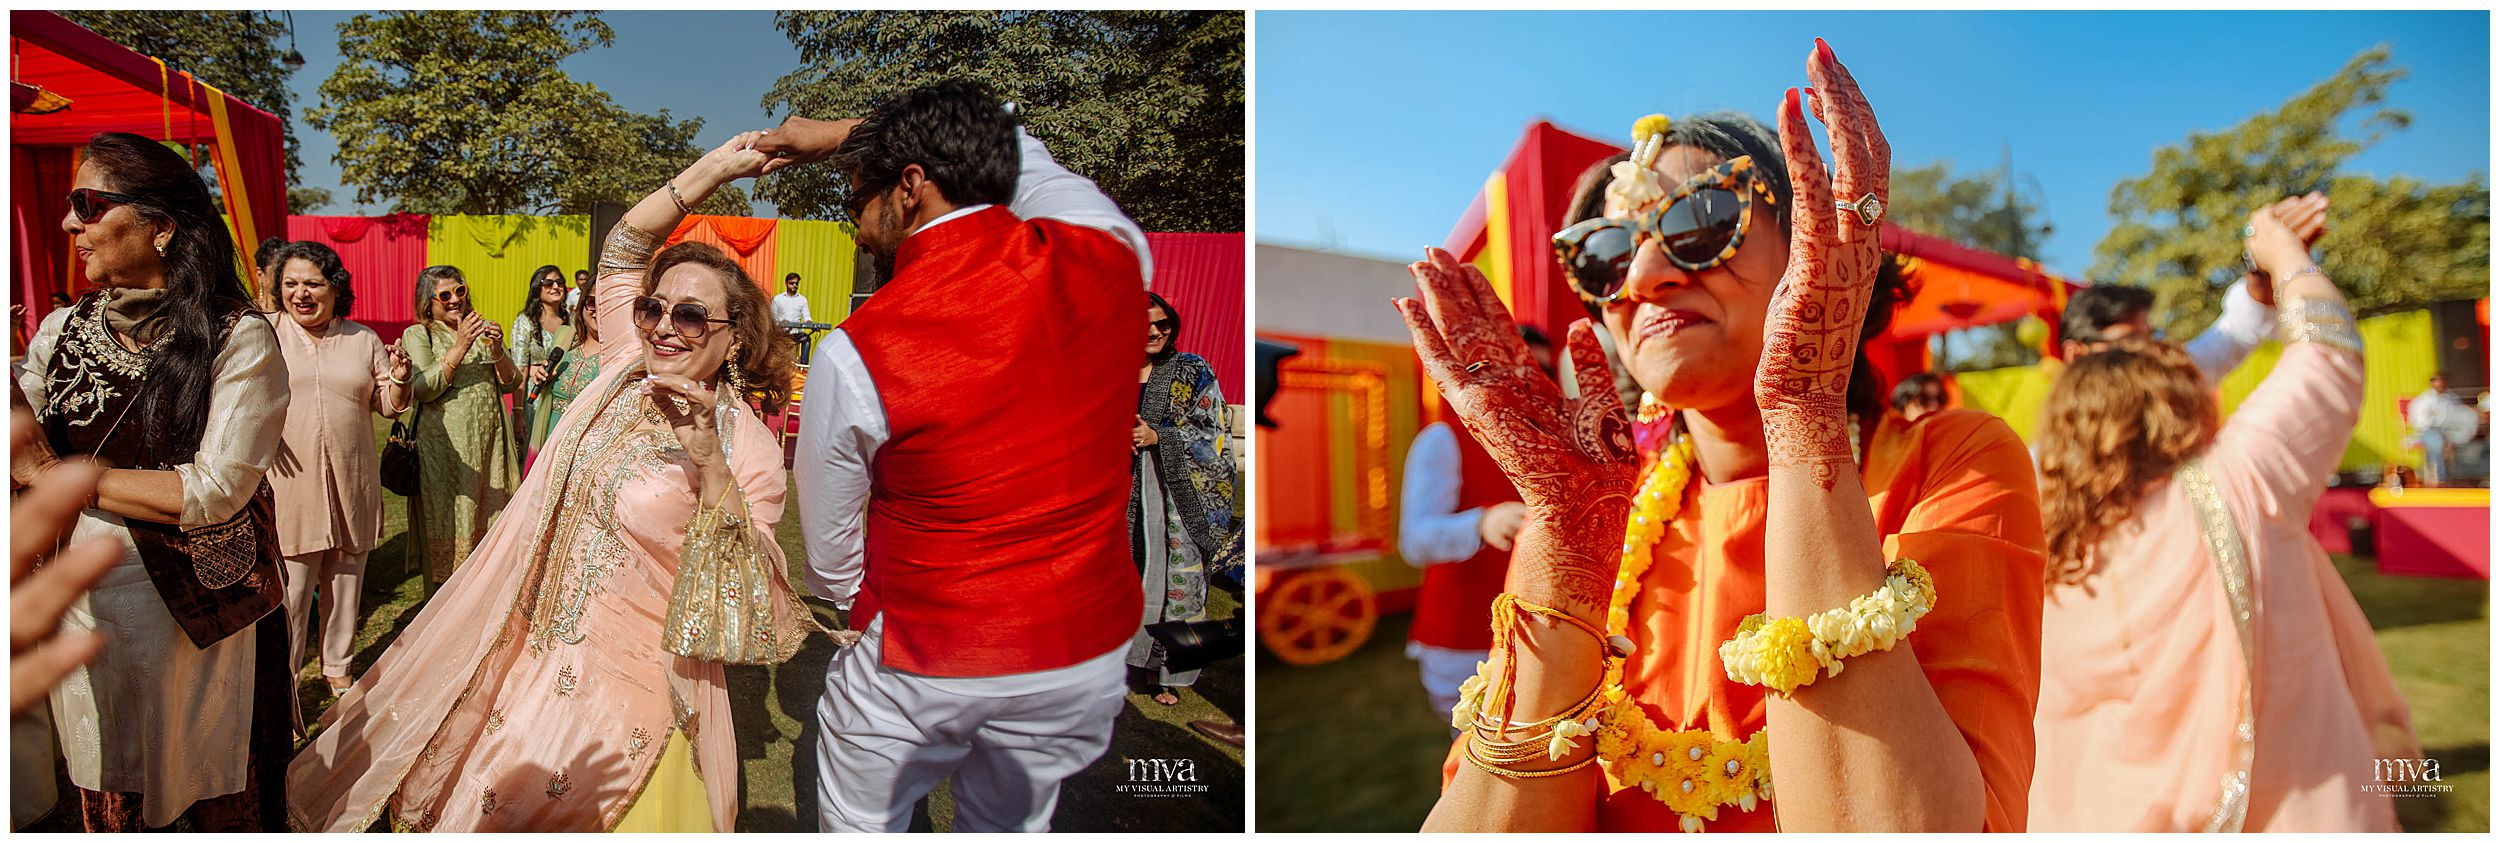 SAHIBA_KARTHIK_MYVISUALARTISTRY_WEDDING_PHOTOGRAPHY_MVA_KERALA_GURGAON_0023.jpg